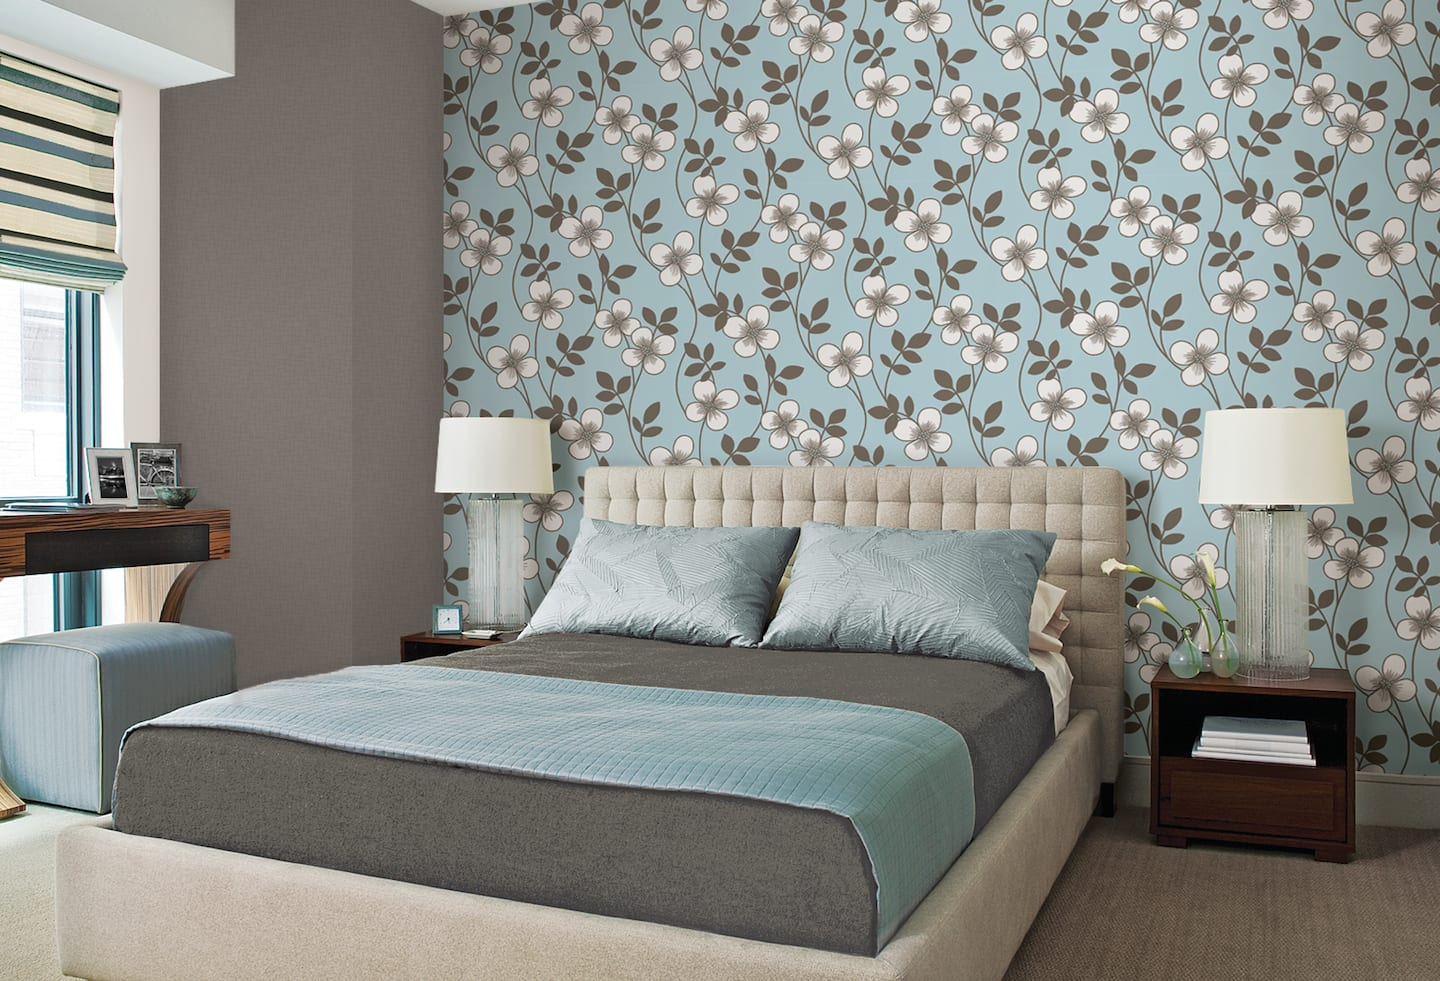 Trendy Wallpaper Designs Stick Around